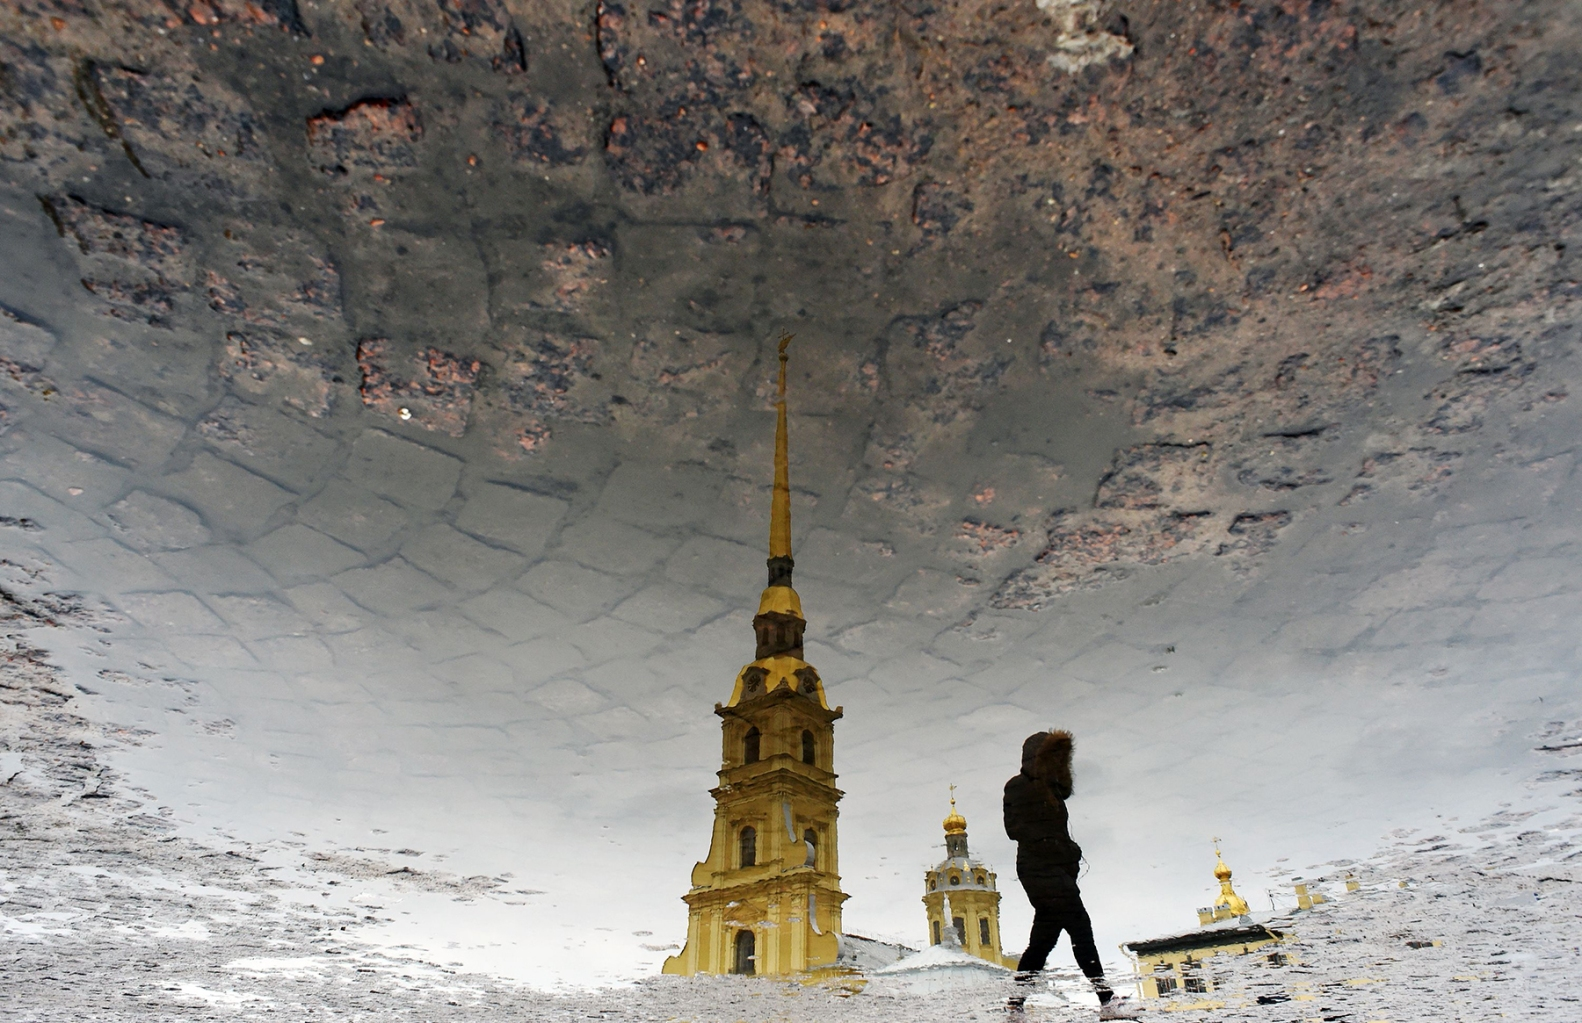 A woman is reflected in a puddle as she crosses a square in front of the Peter and Paul Cathedral in Saint Petersburg on March, 17. OLGA MALTSEVA/AFP/Getty Images